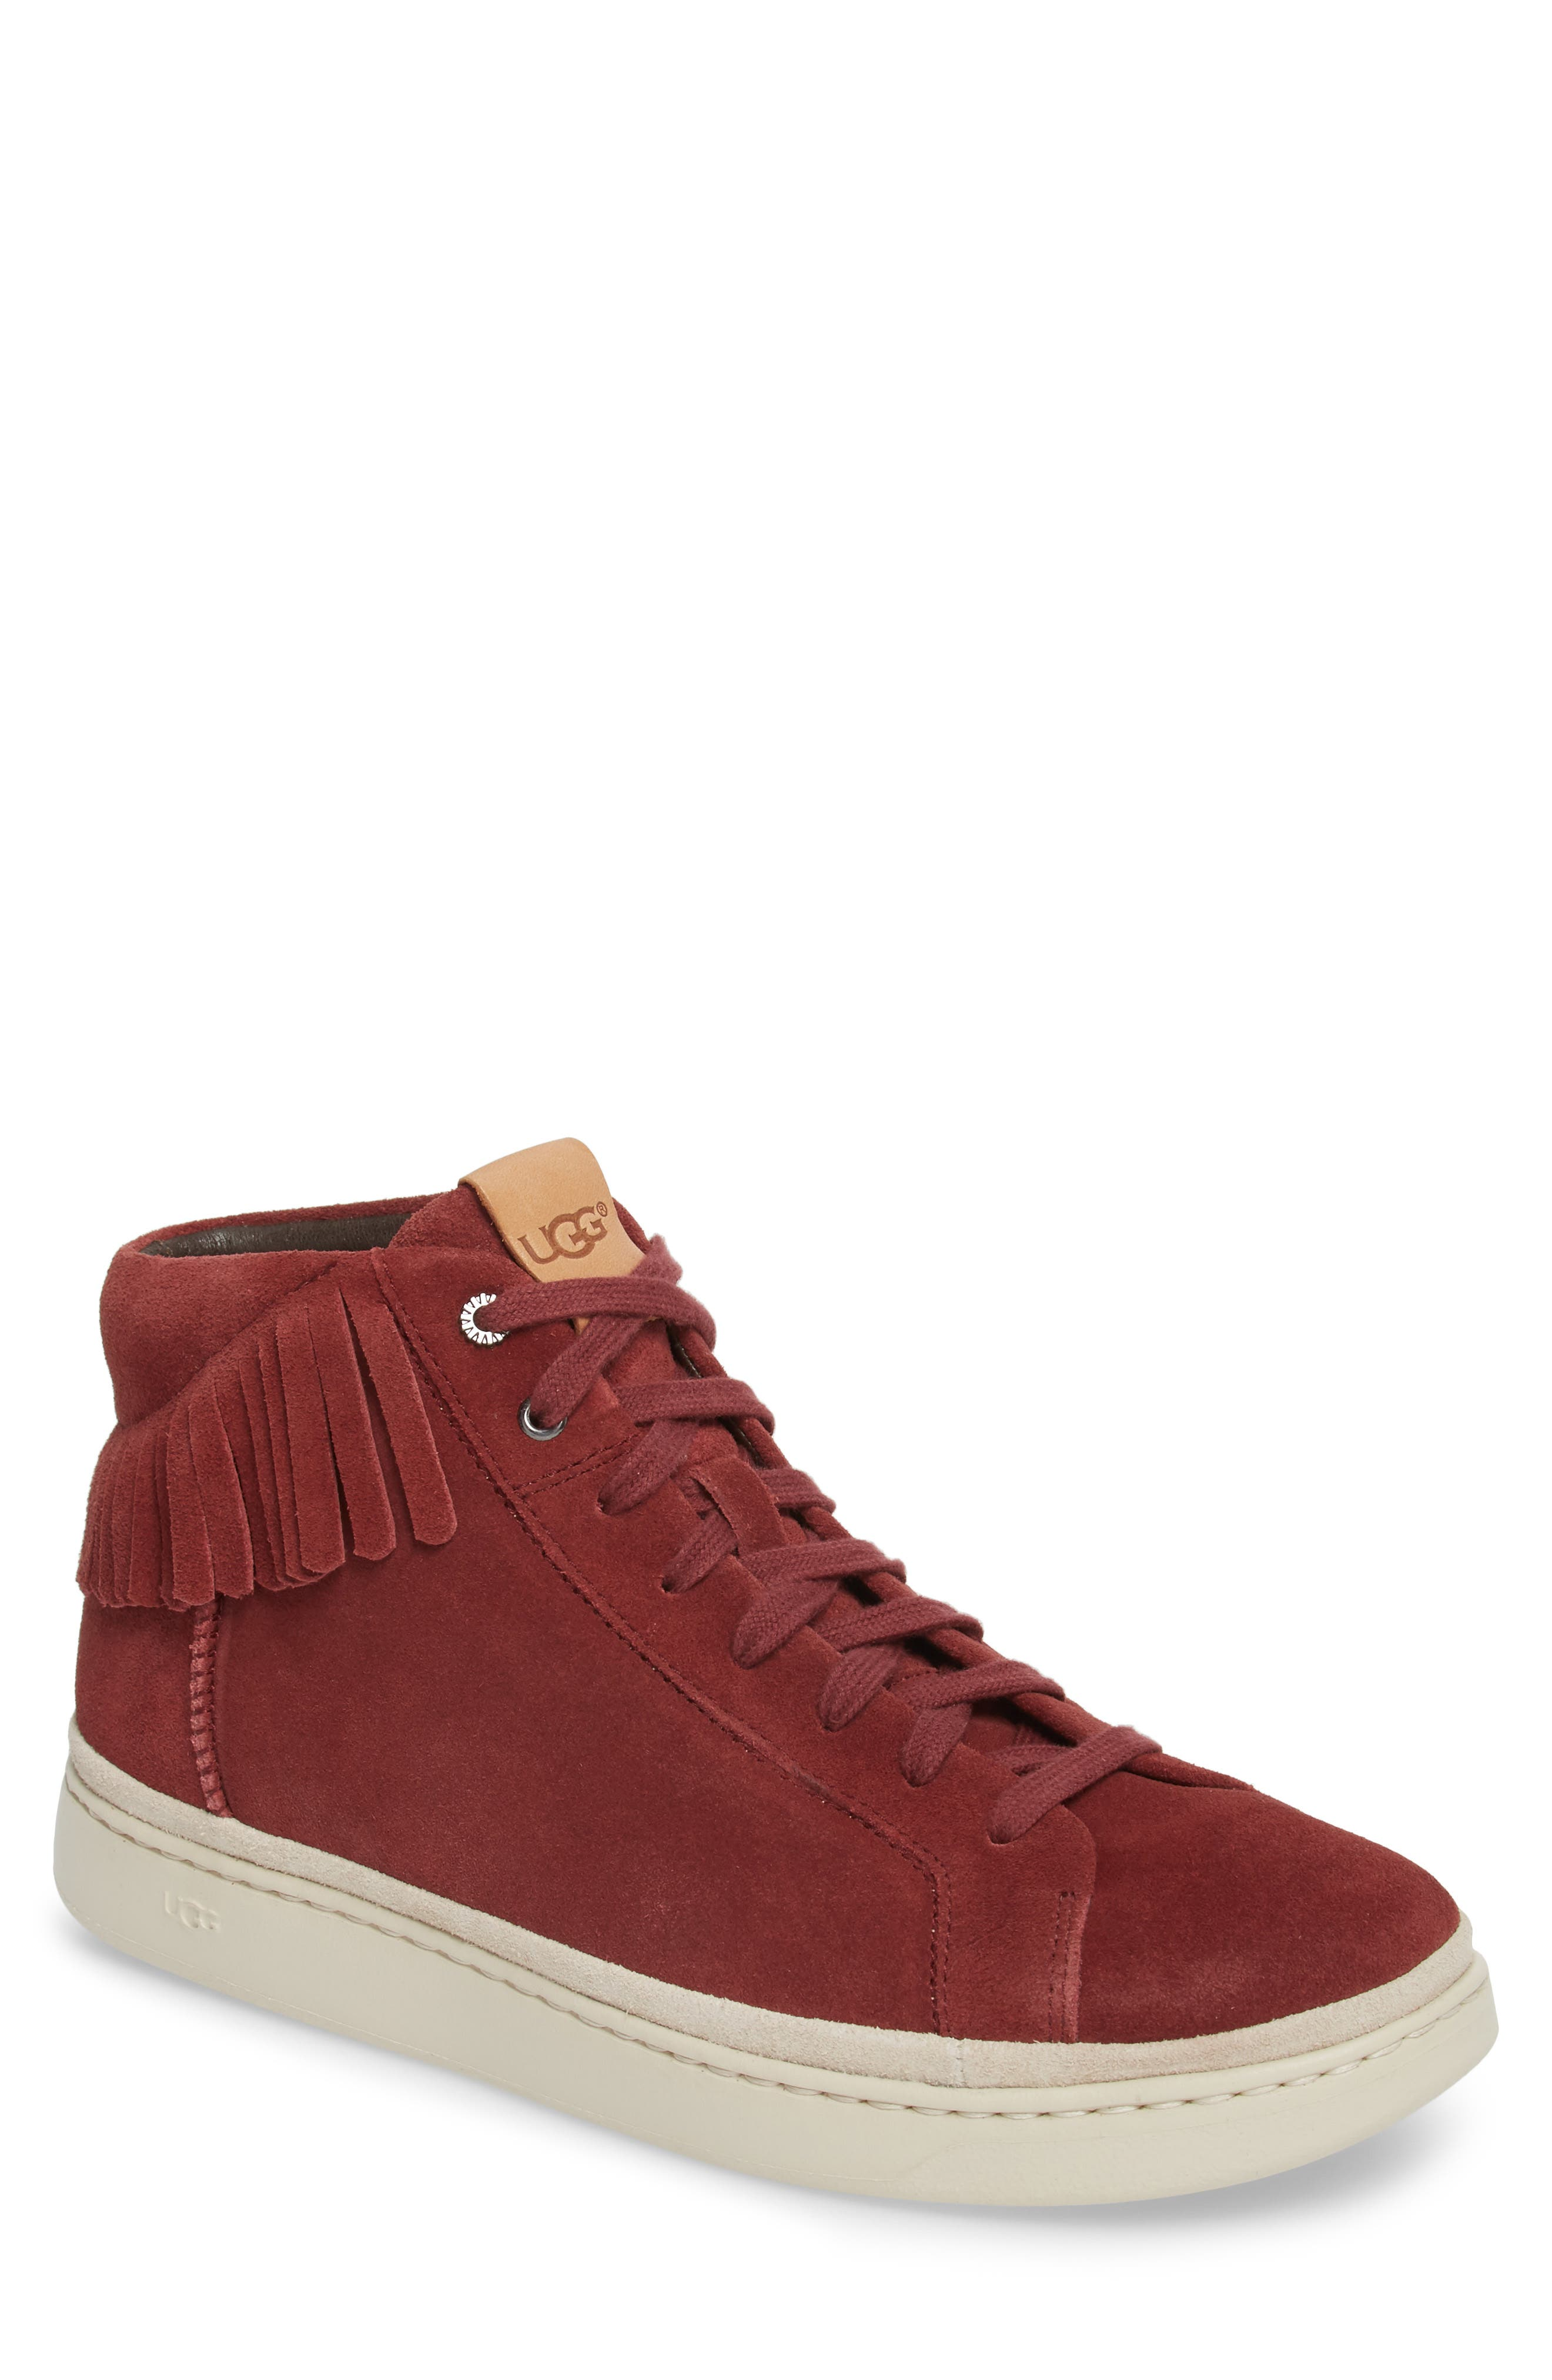 Brecken Fringe High-Top Sneaker,                         Main,                         color, Pinot Noir Leather